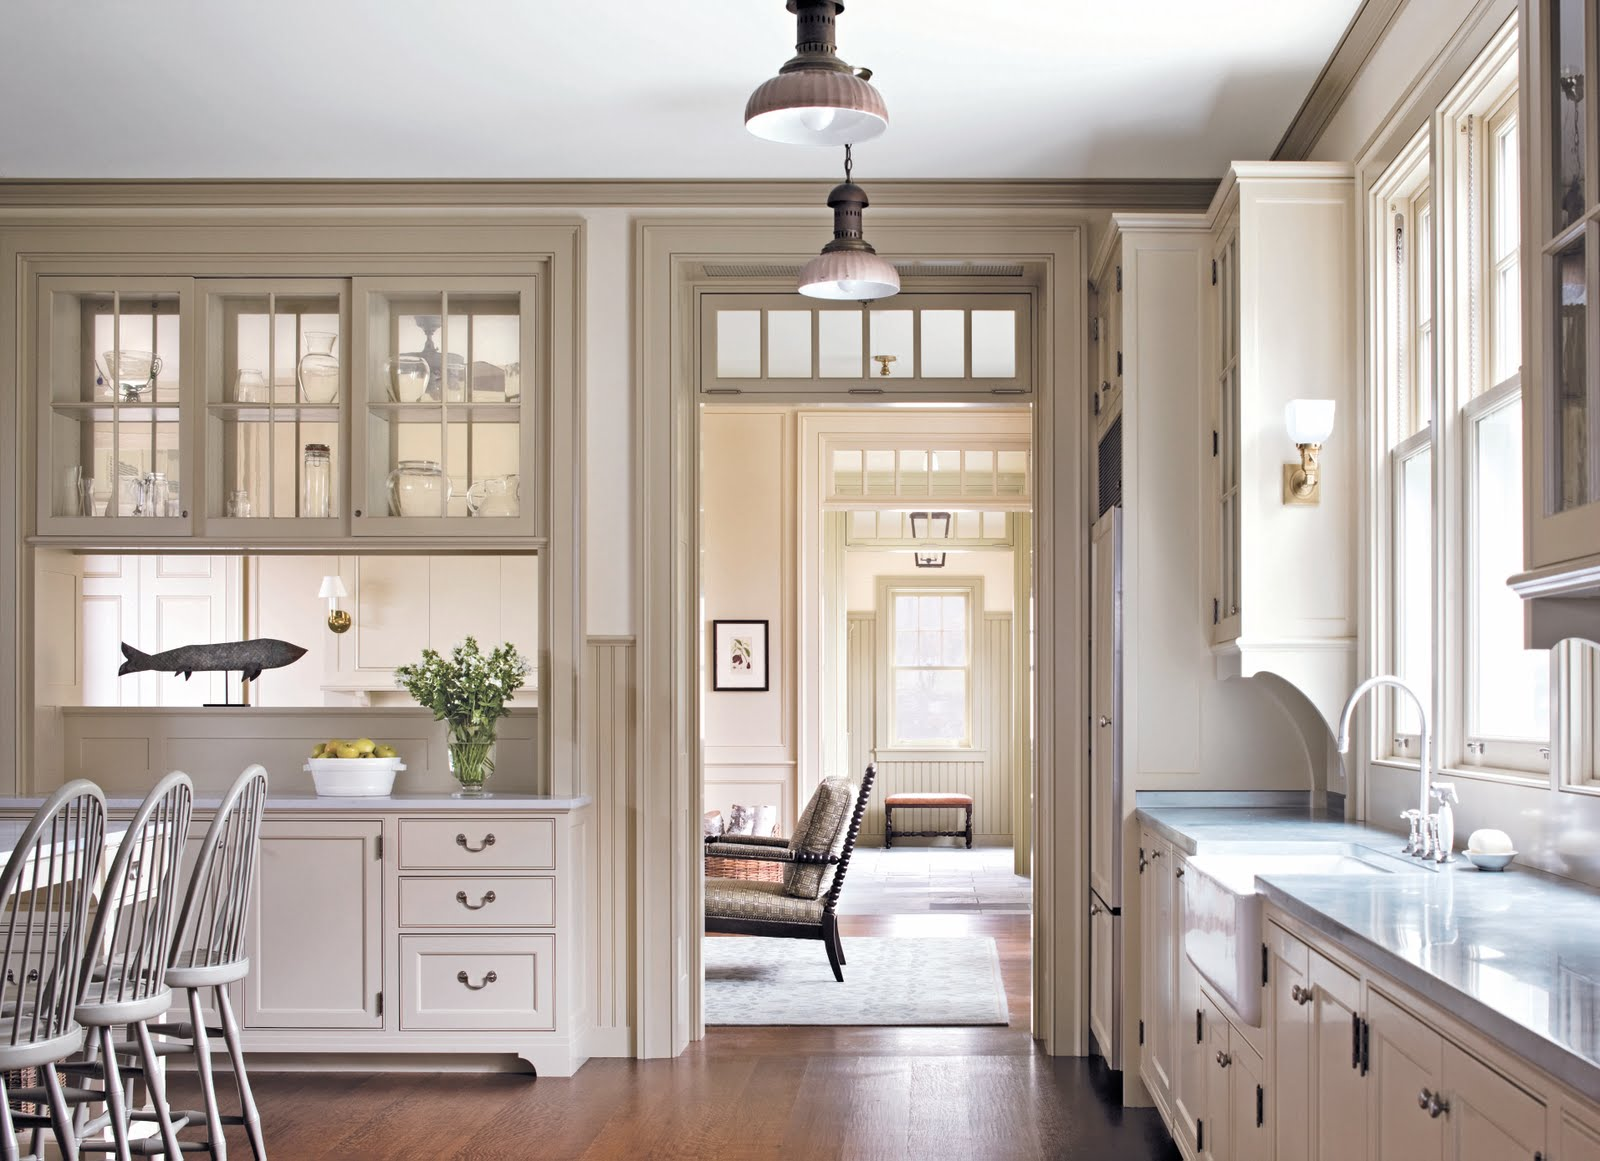 Victoria Hagan Kitchen Design